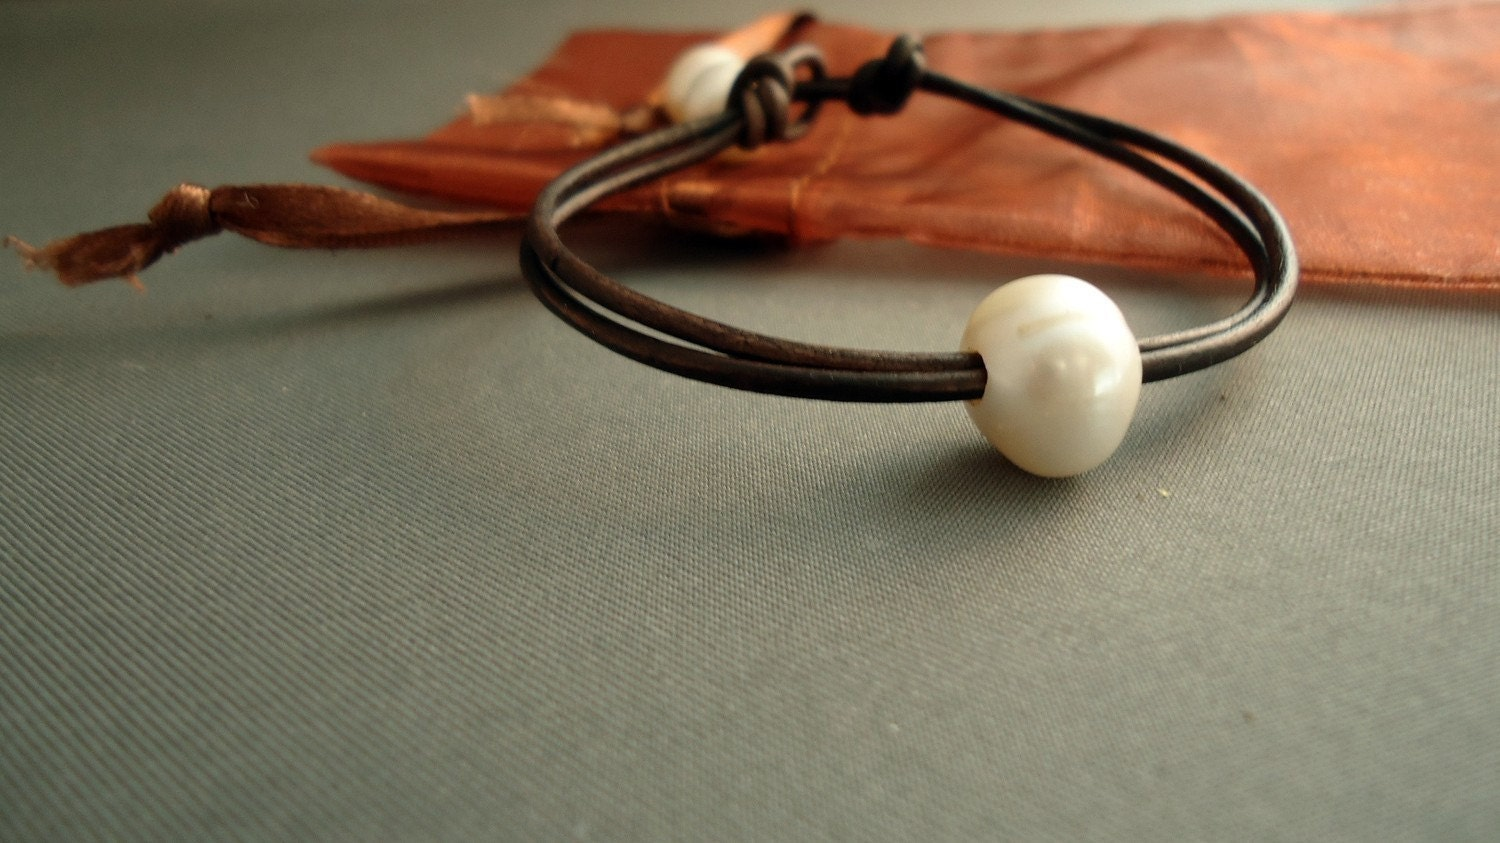 Single,pearl,leather,Bracelet,Jewelry,Bangle,pearl_bracelet,leather_bracelet,leather_and_pearls,pearls_and_leather,ocean,women_gifts,white_pearls,freshwater_pearls,nautica,modern_chic,freshwater pearls,greek leather